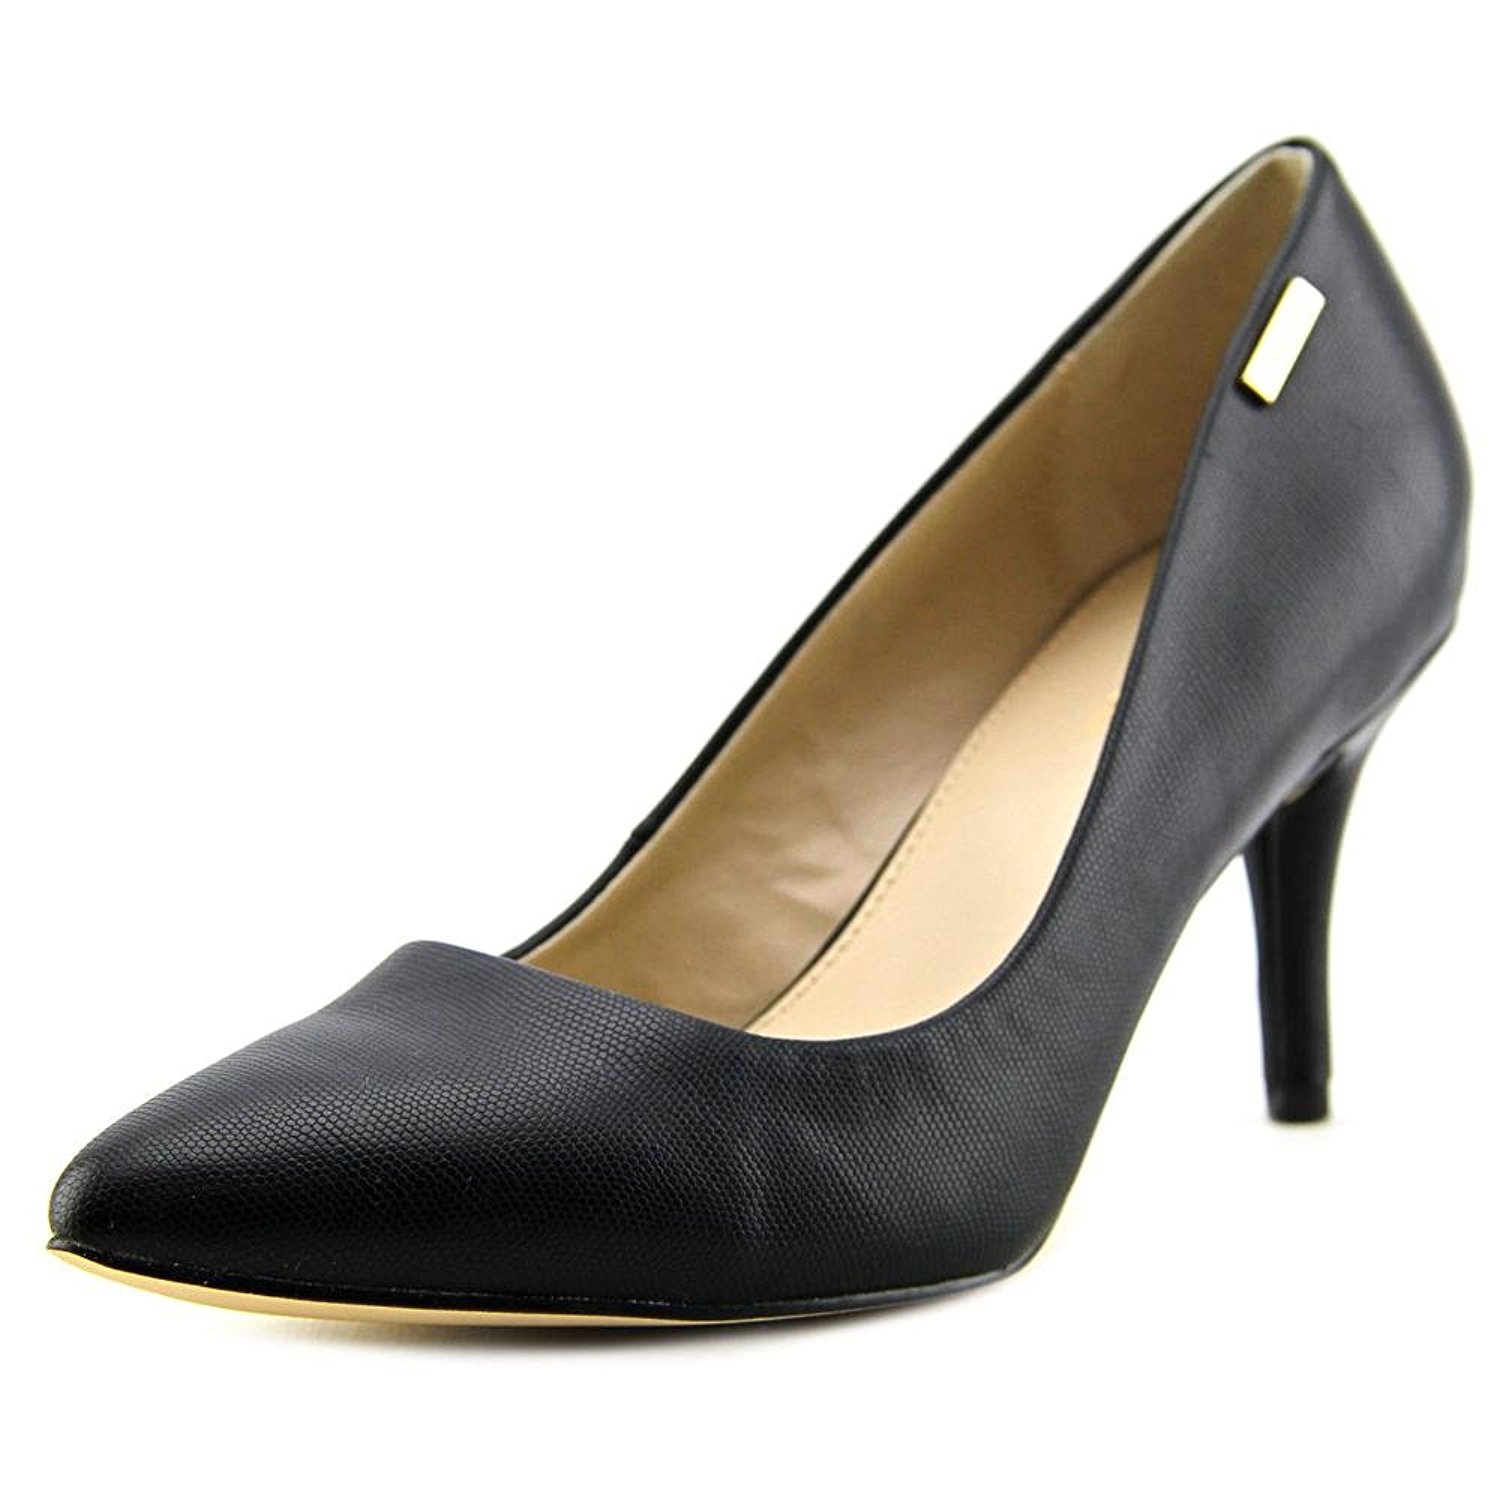 Calvin Klein Womens Kimberly Pointed Toe Classic Pumps Black Size 7.5